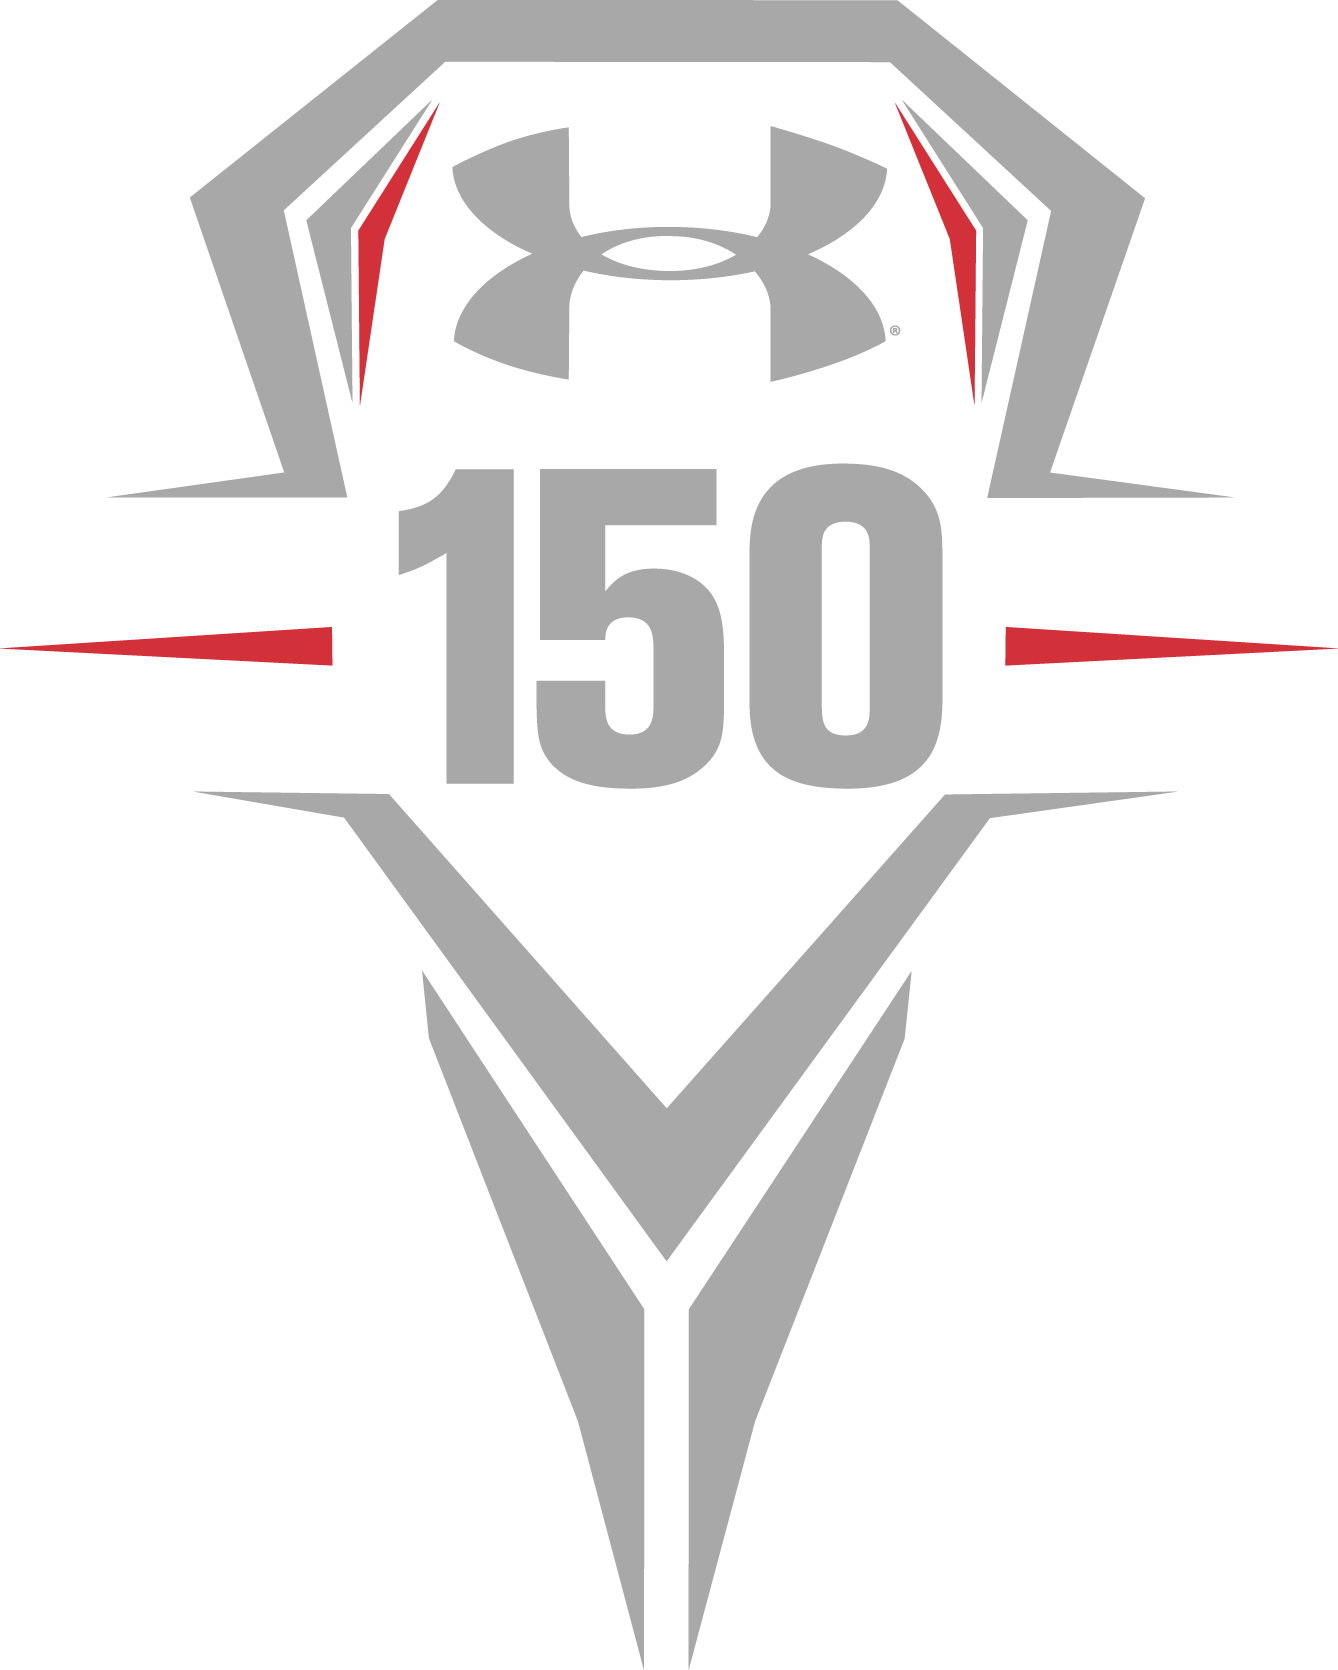 Under Armour 150 Home